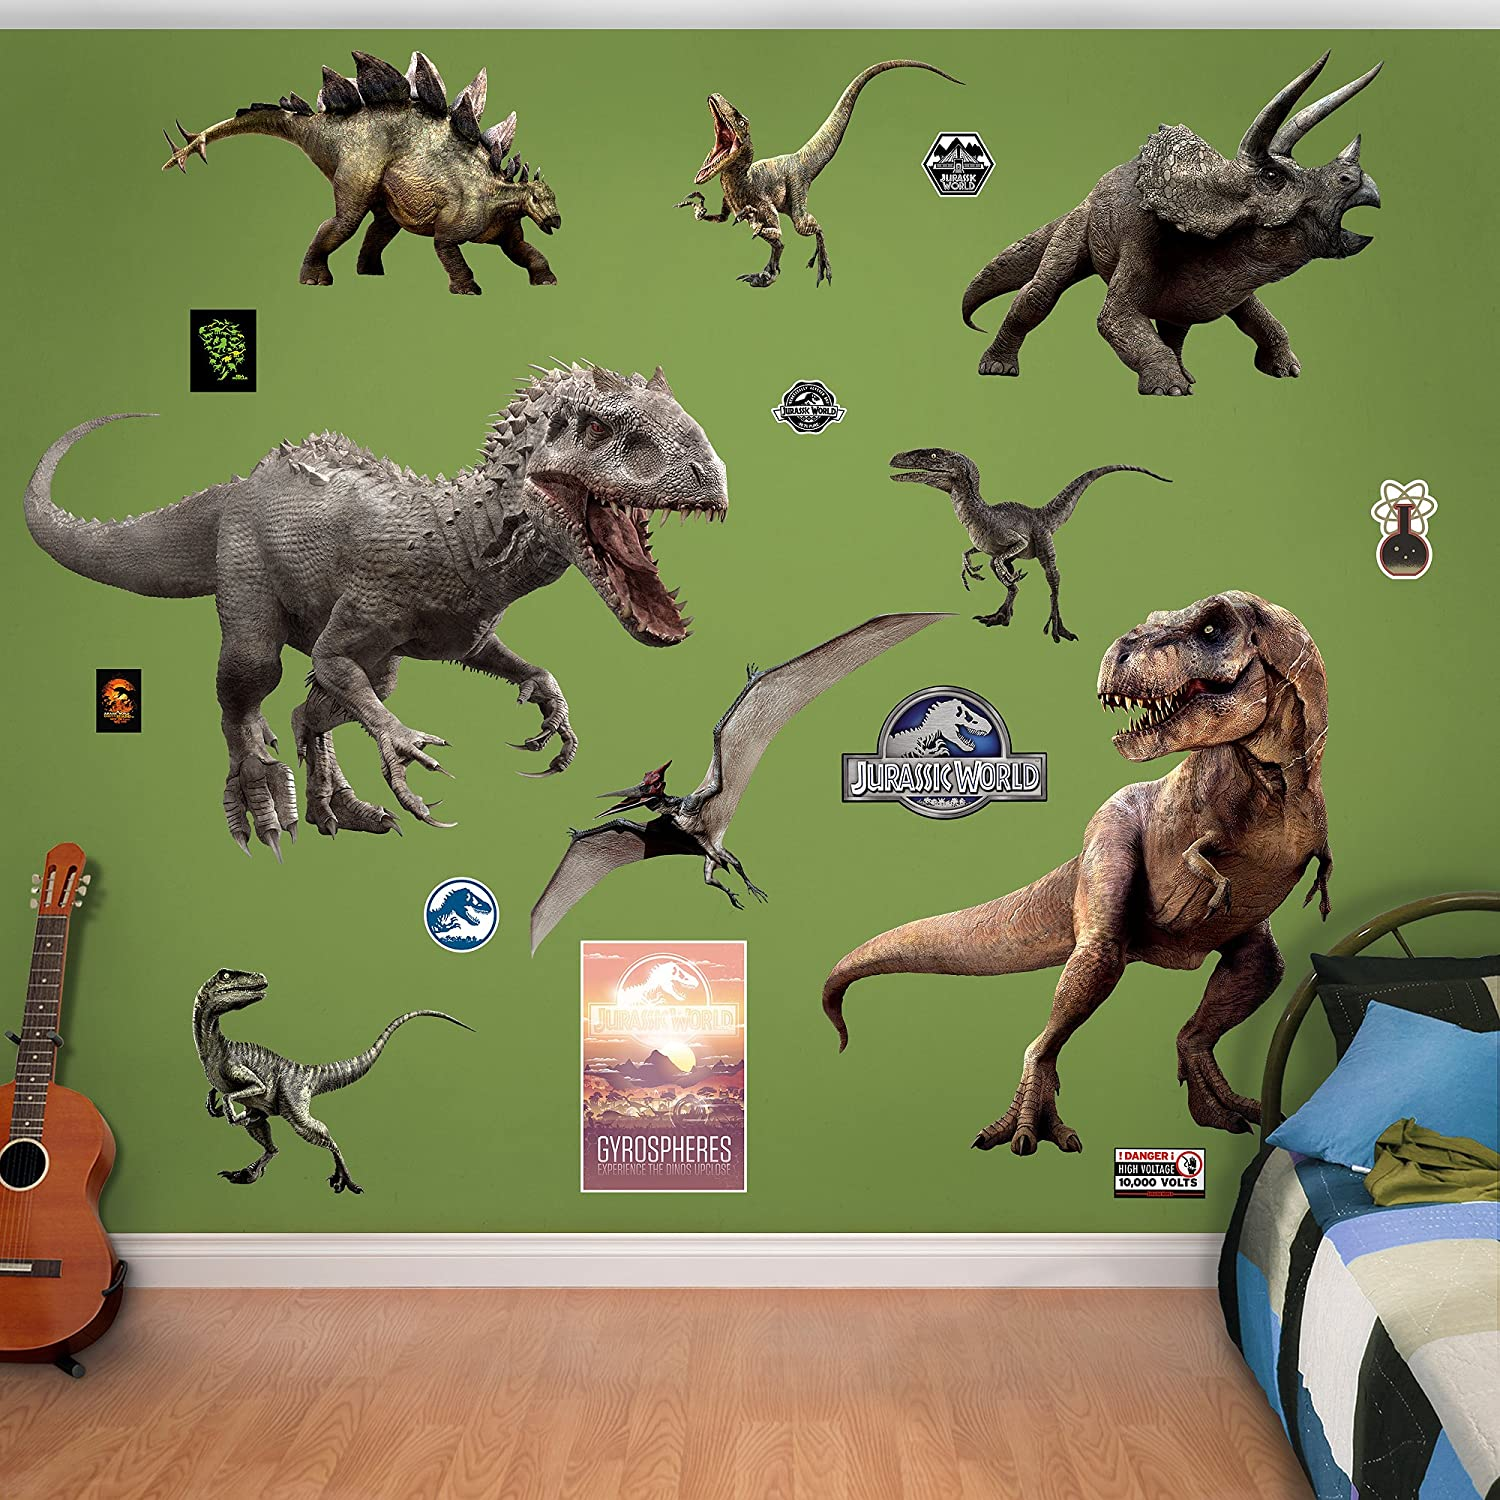 Amazoncom Fathead Jurassic World Dinosaurs Collection Real - 3d dinosaur wall decalsd dinosaur wall stickers for kids bedrooms jurassic world wall